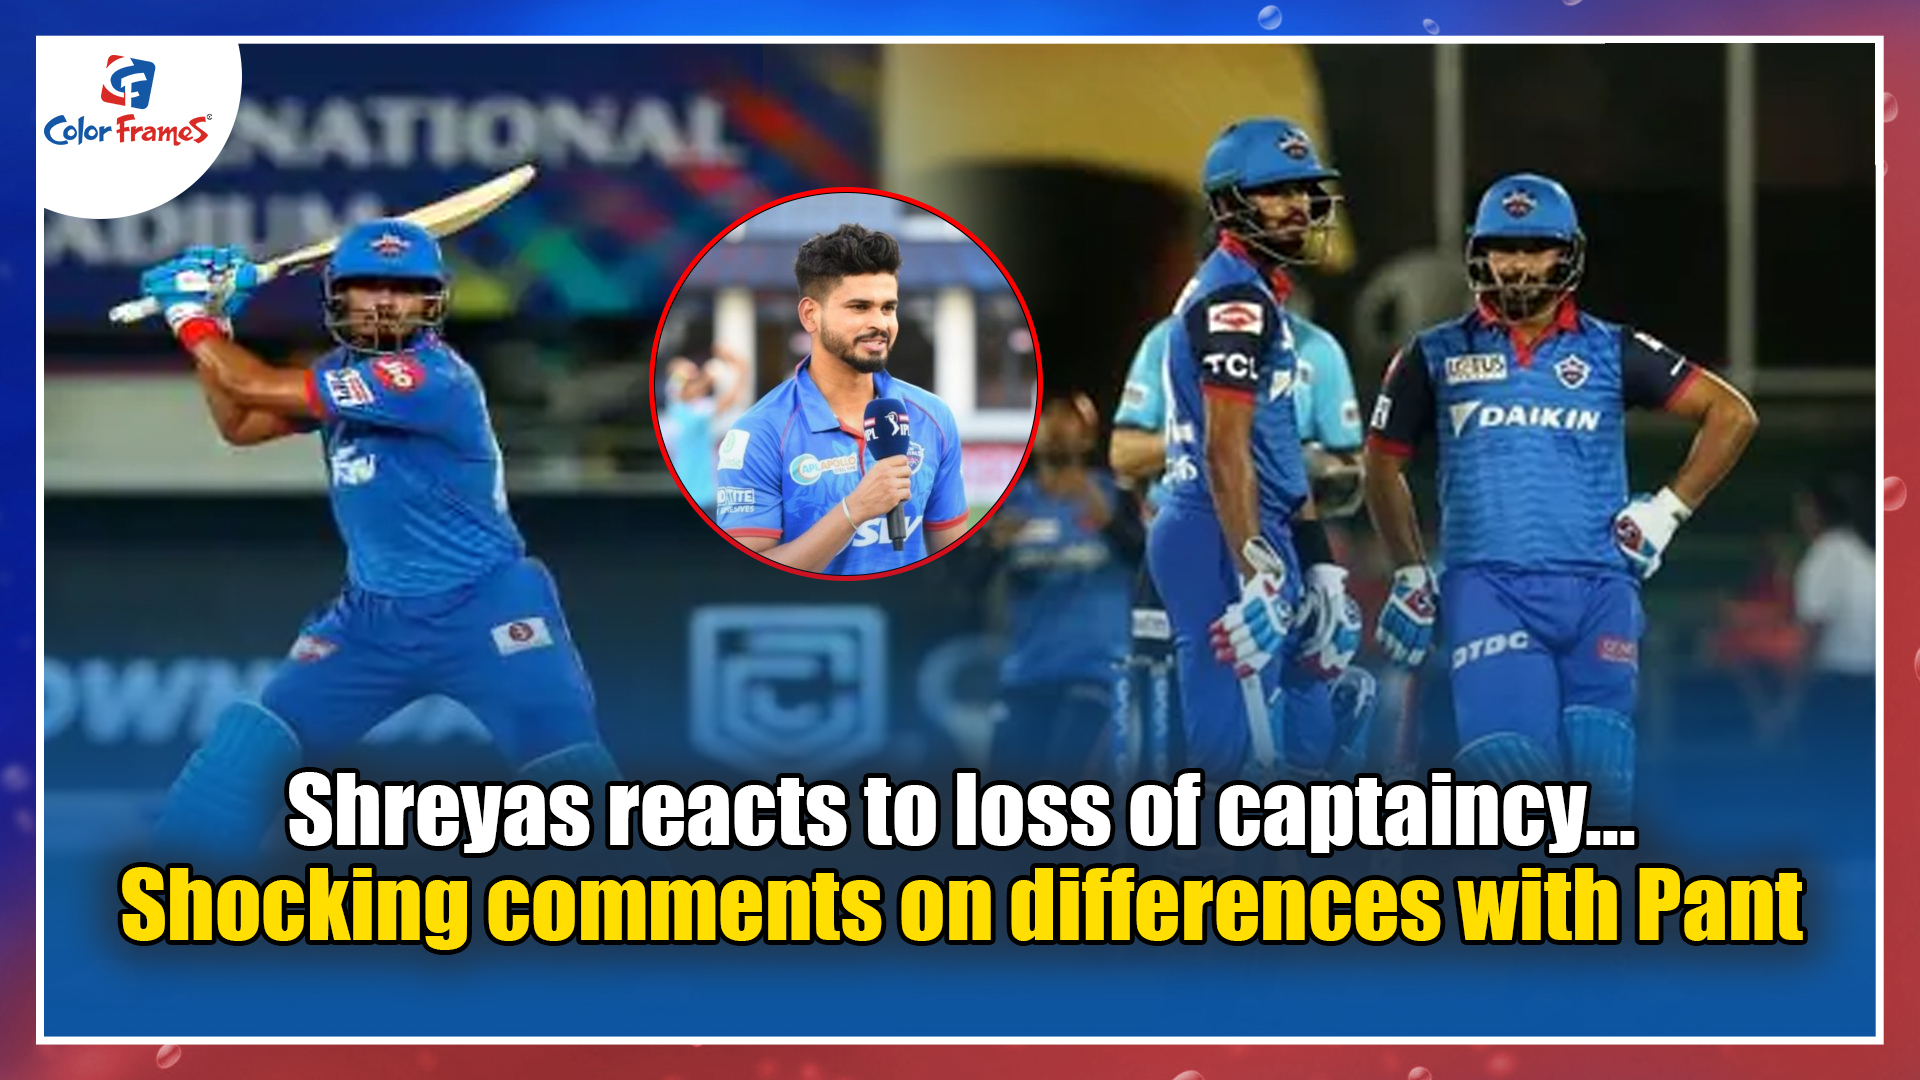 Shreyas reacts to loss of captaincy... Shocking comments on differences with Pant